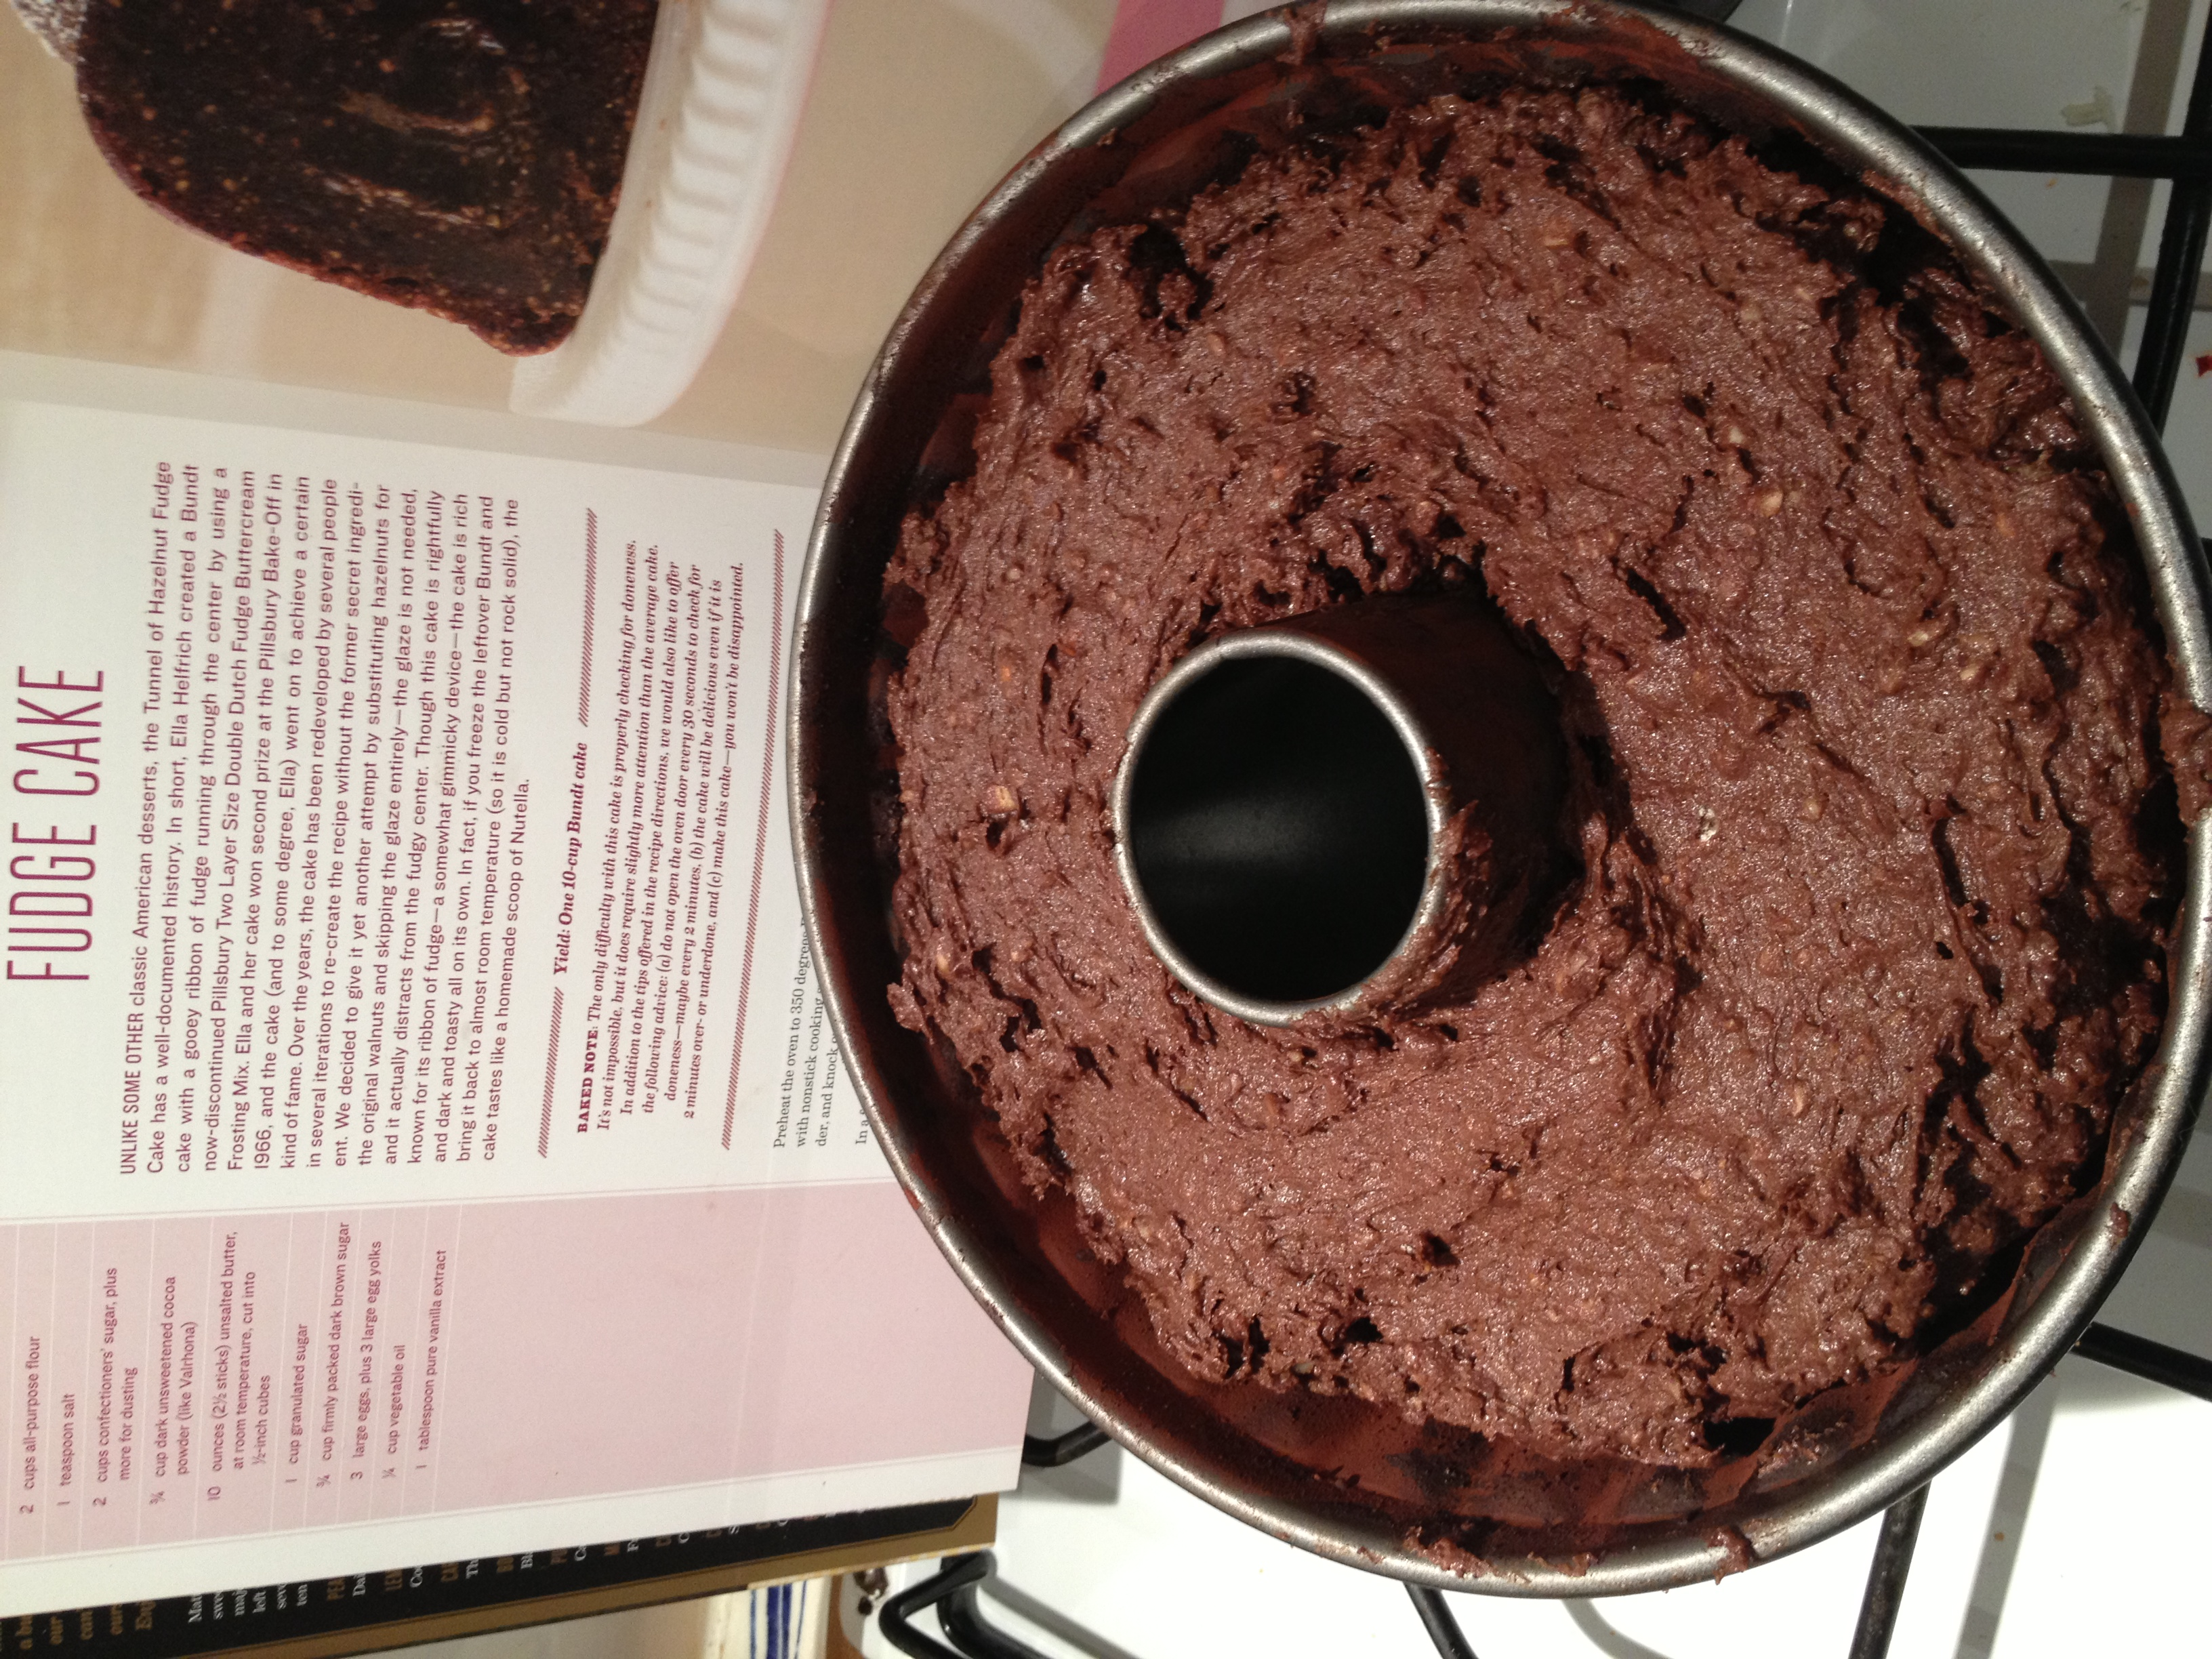 Tunnel of Fudge Cake Fudge Cake in Pan